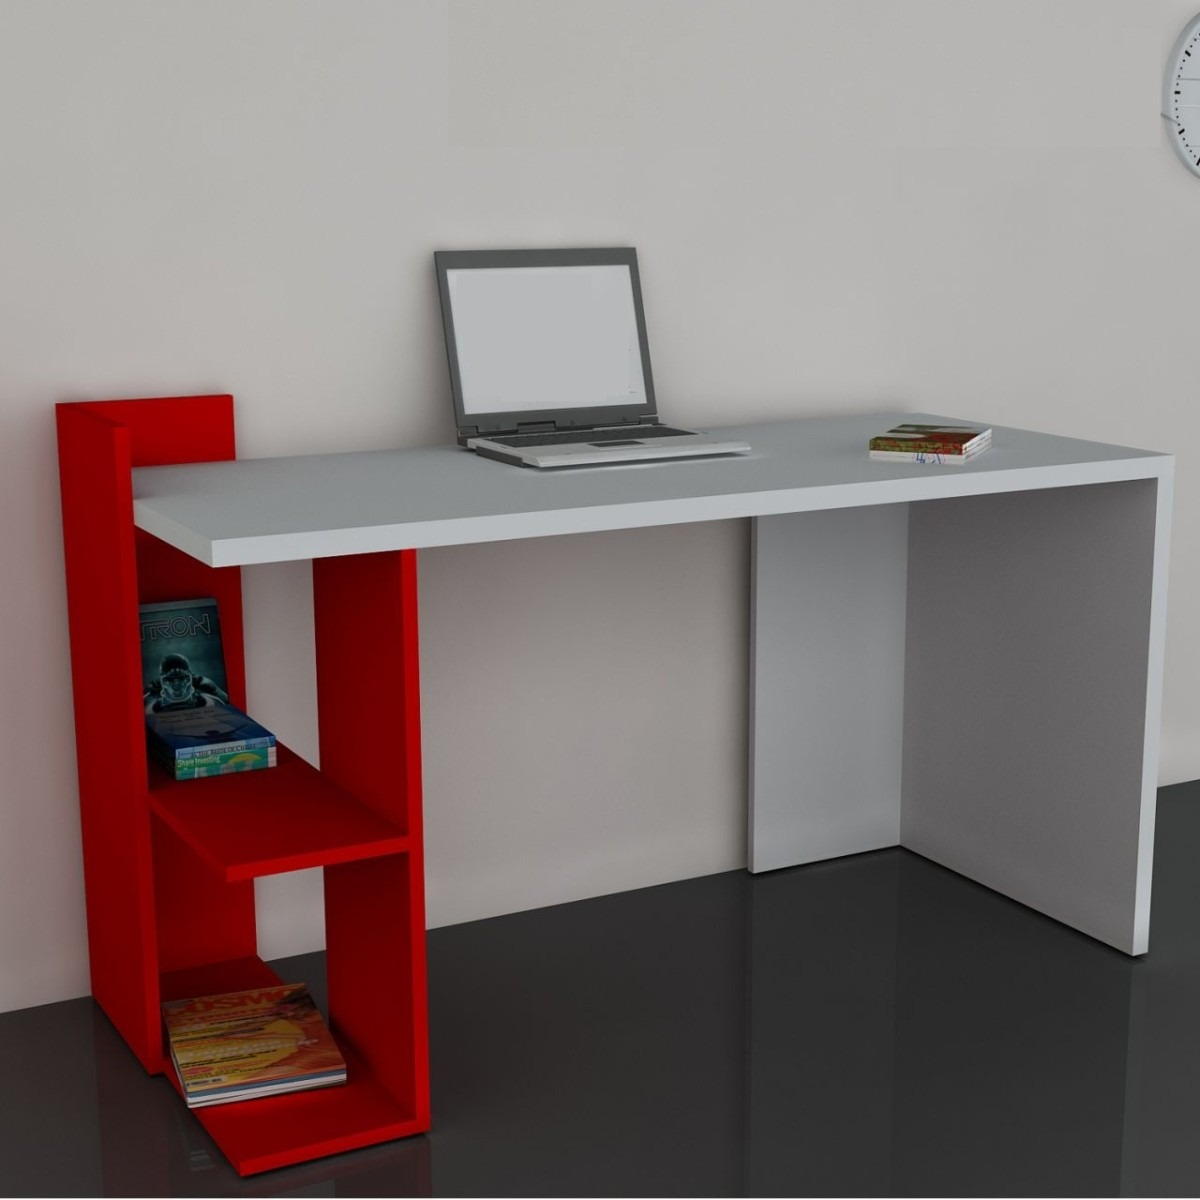 Muebles para computadora modernos imagui for Escritorios homecenter